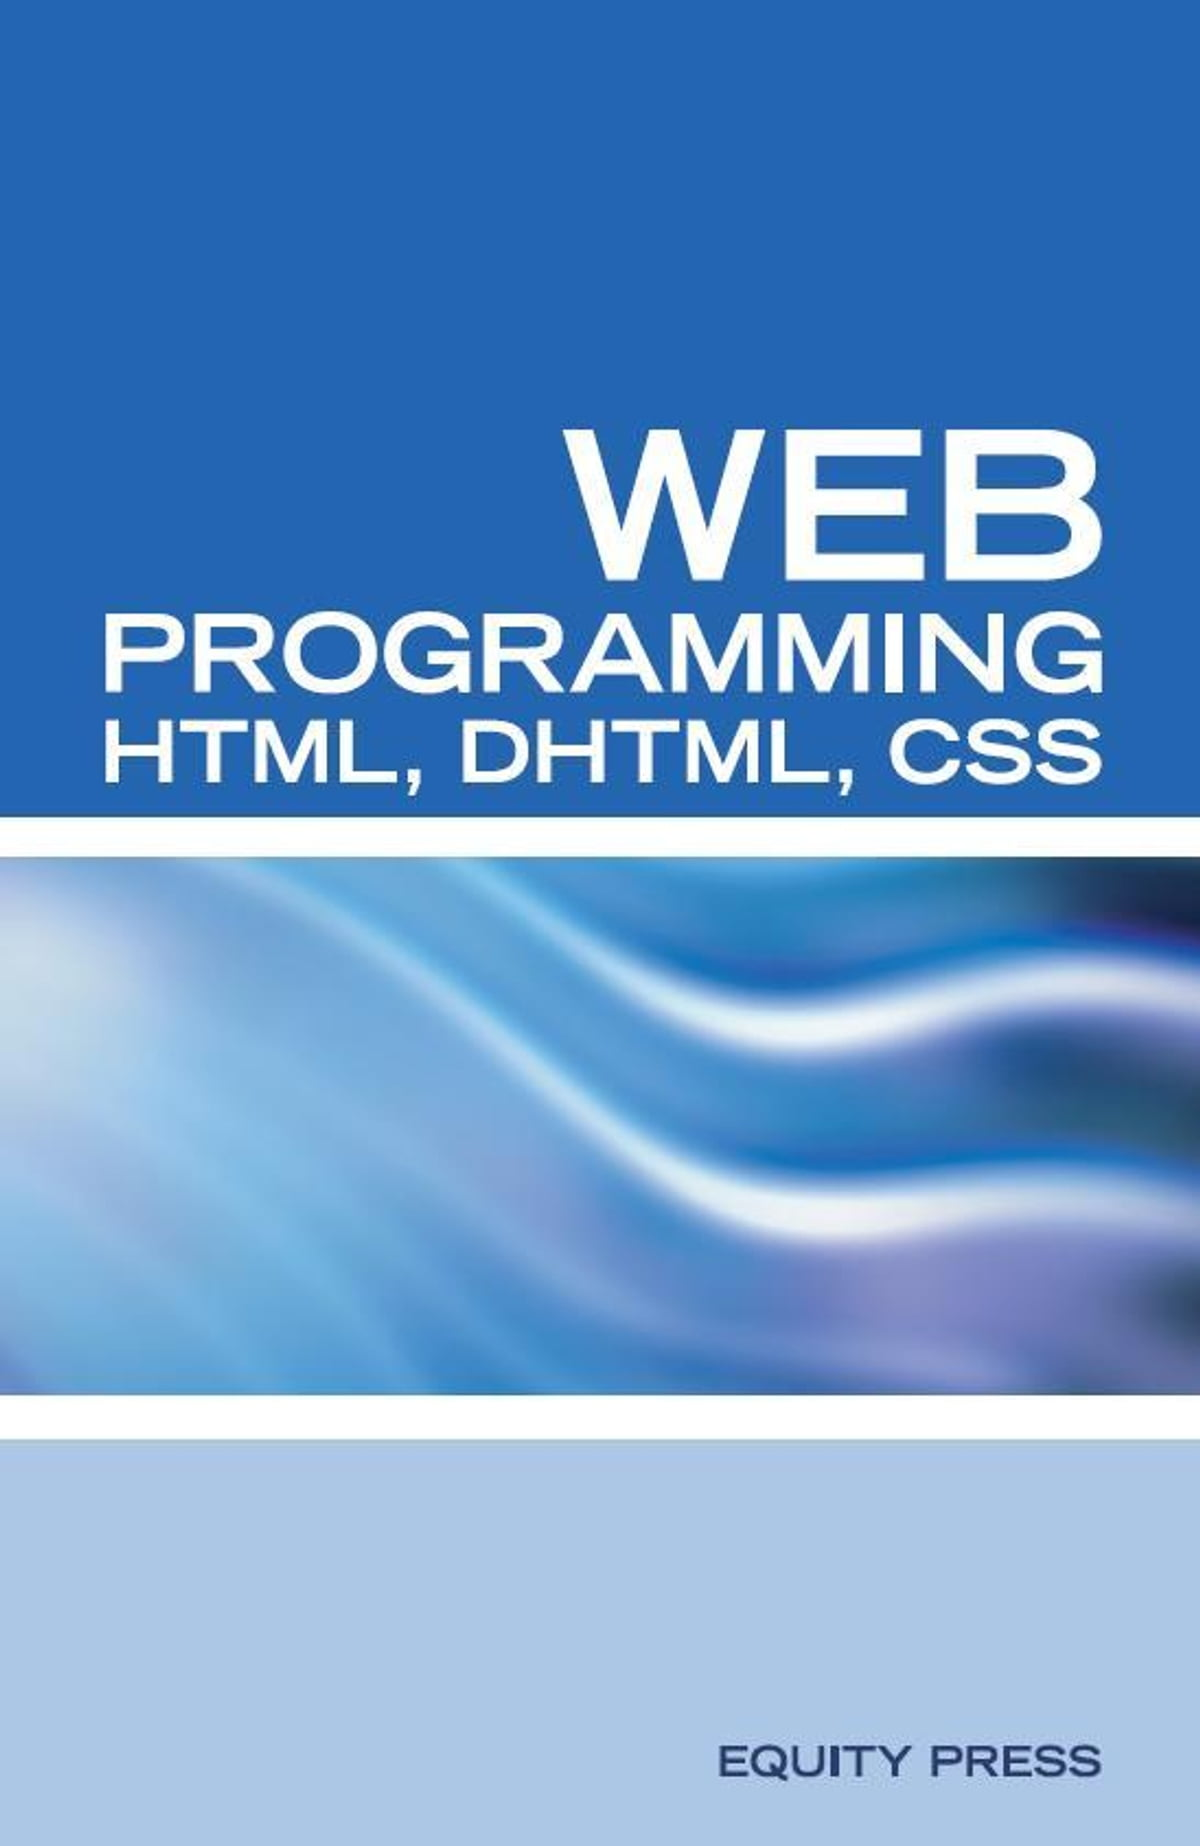 Web Programming Interview Questions With Html Dhtml And Css Html